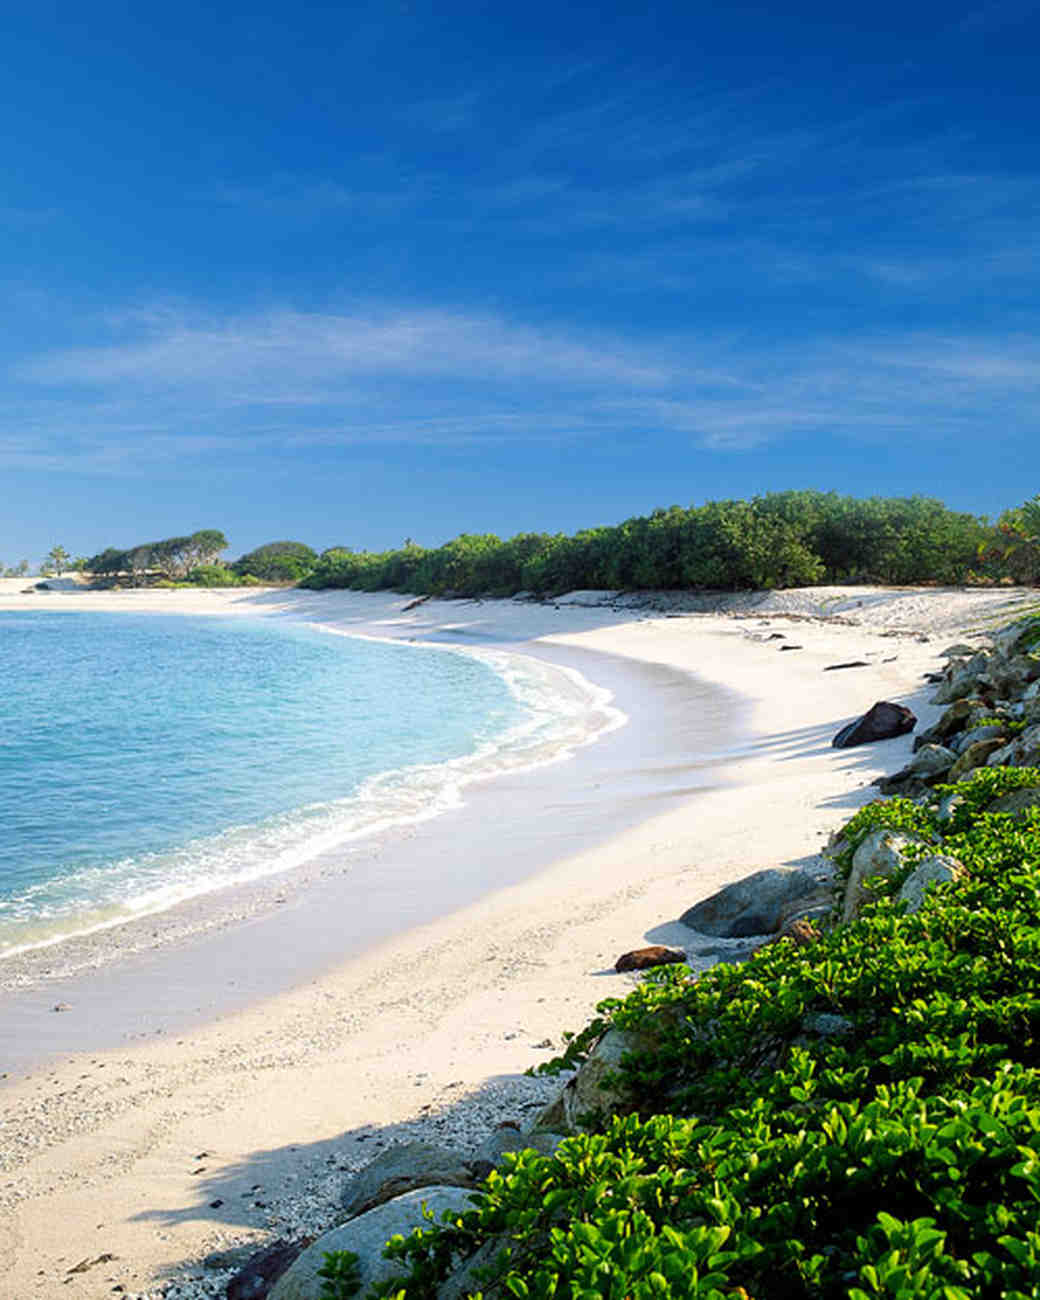 Gulf Of Mexico Vacation Spots In Texas: The Best Beaches In Mexico